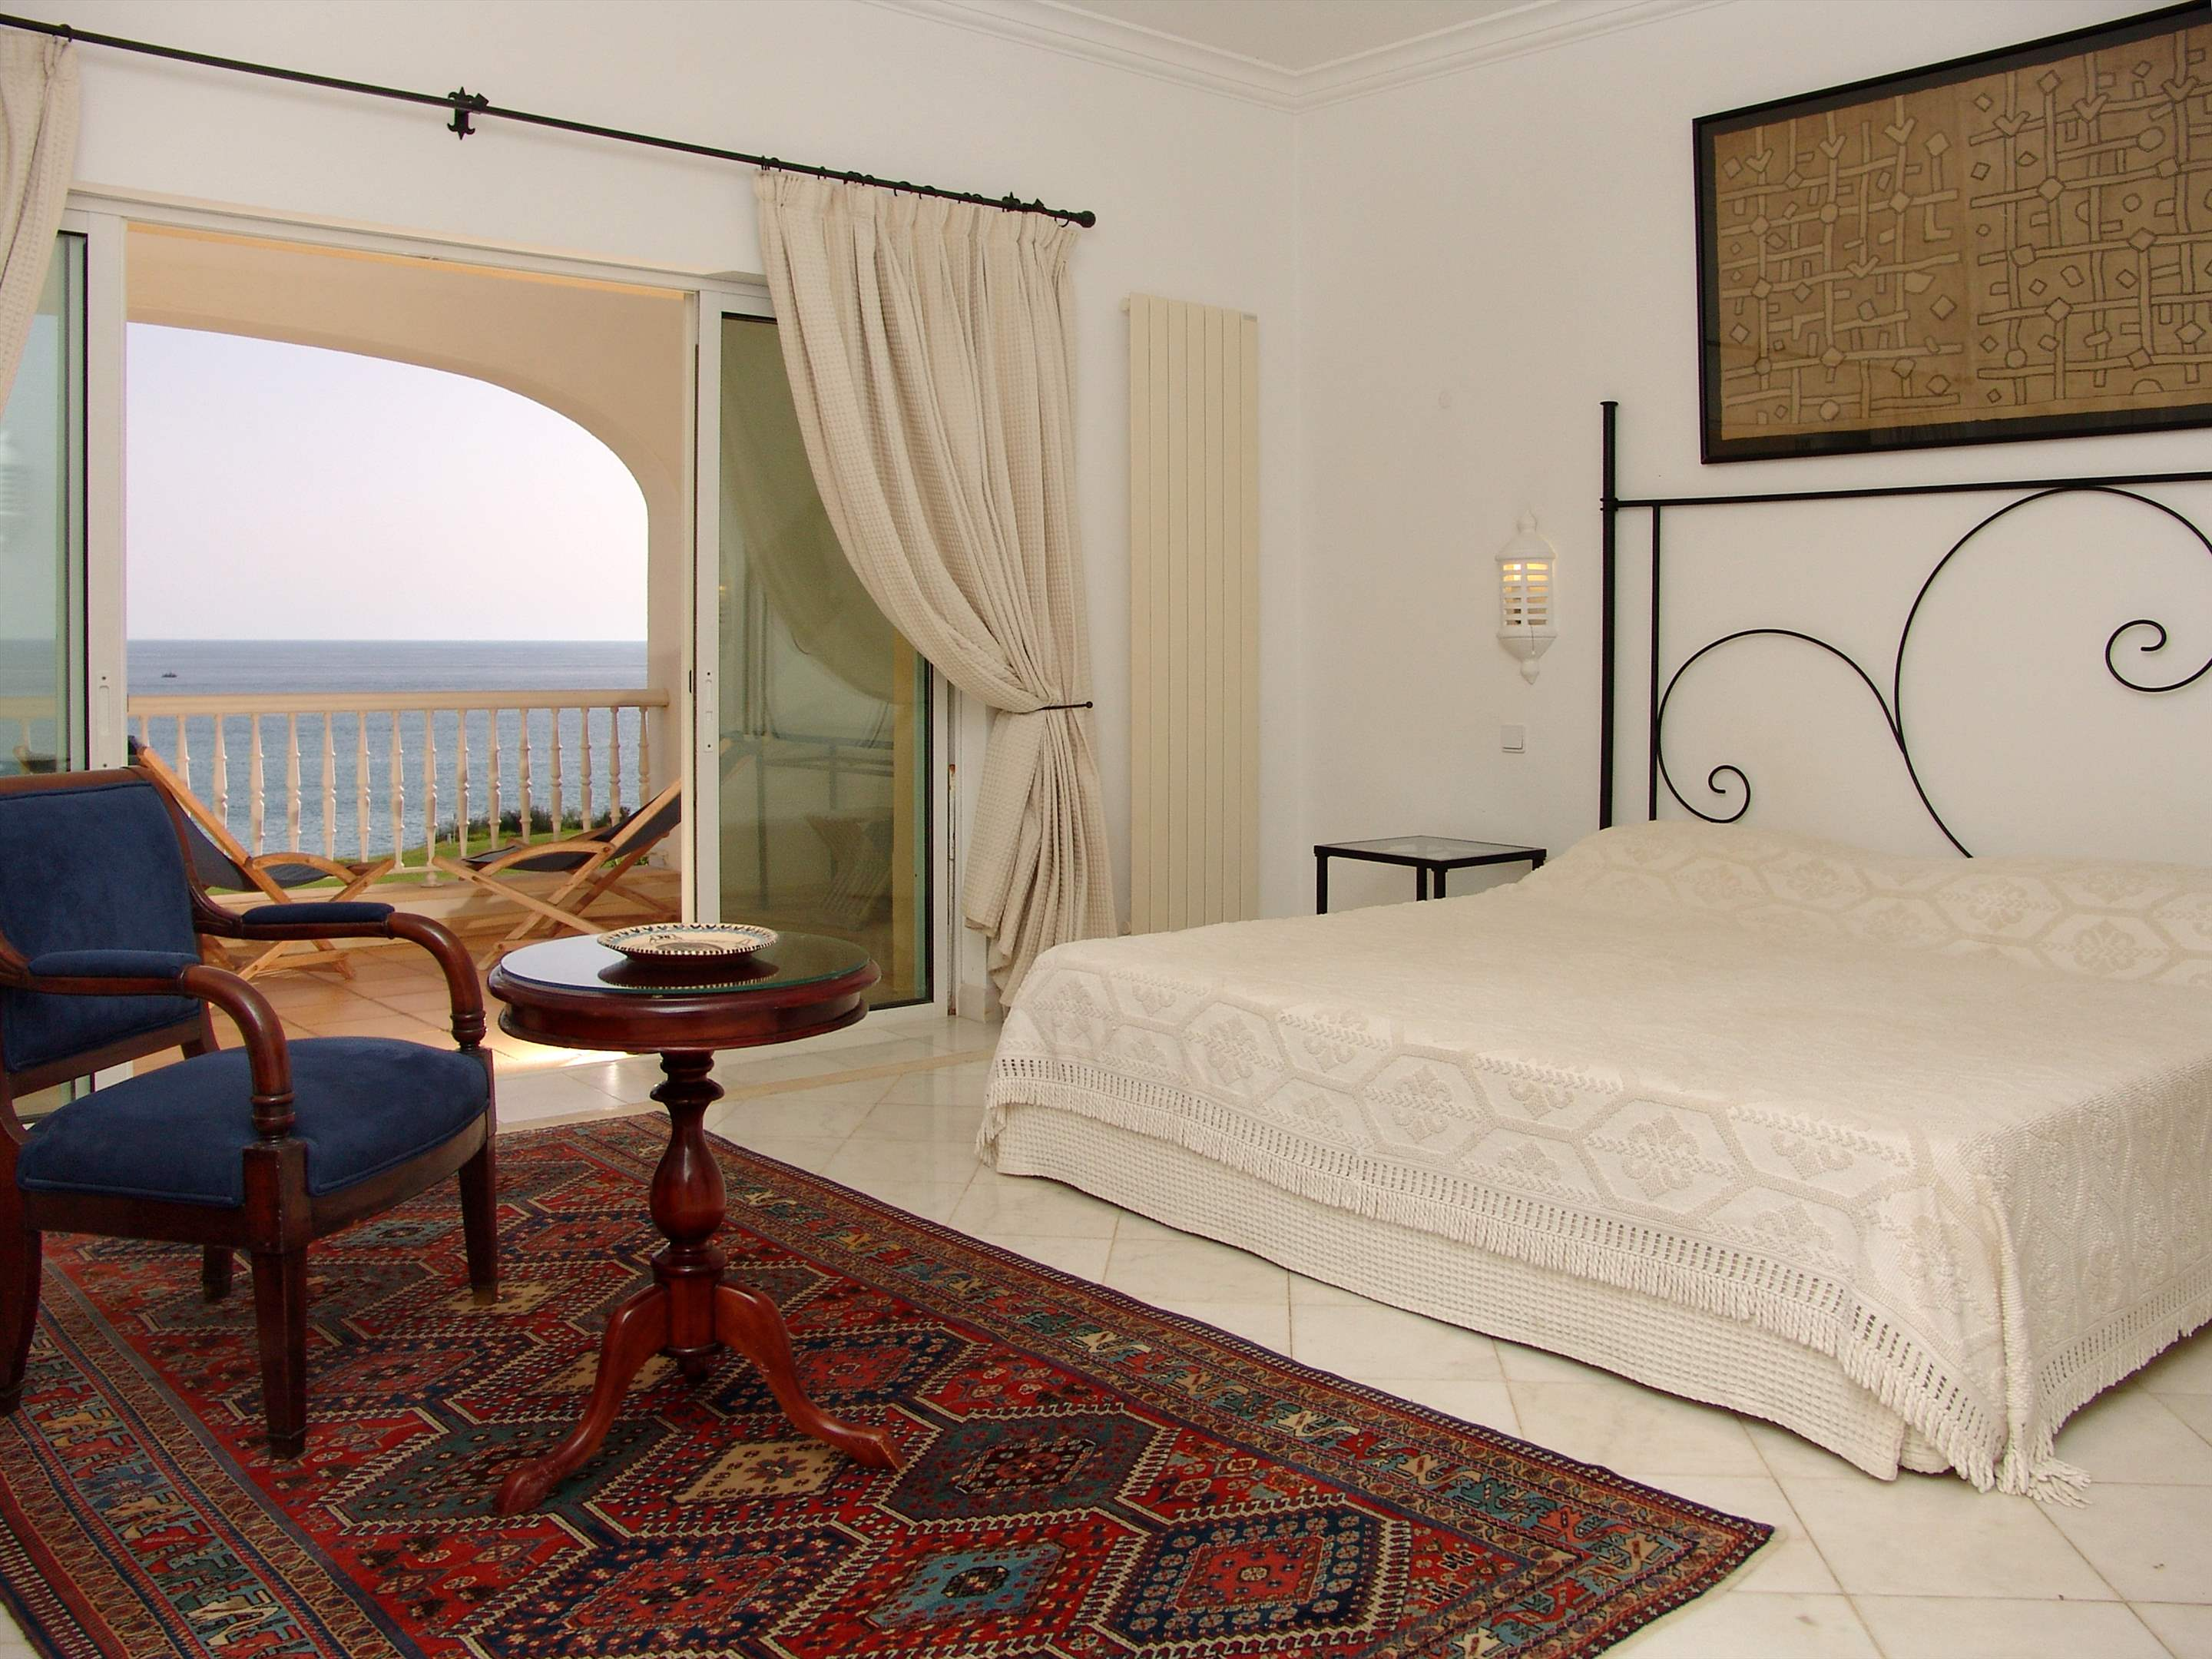 Villas Louisa, 4 Bedroom, 4 bedroom villa in Vale do Lobo, Algarve Photo #15